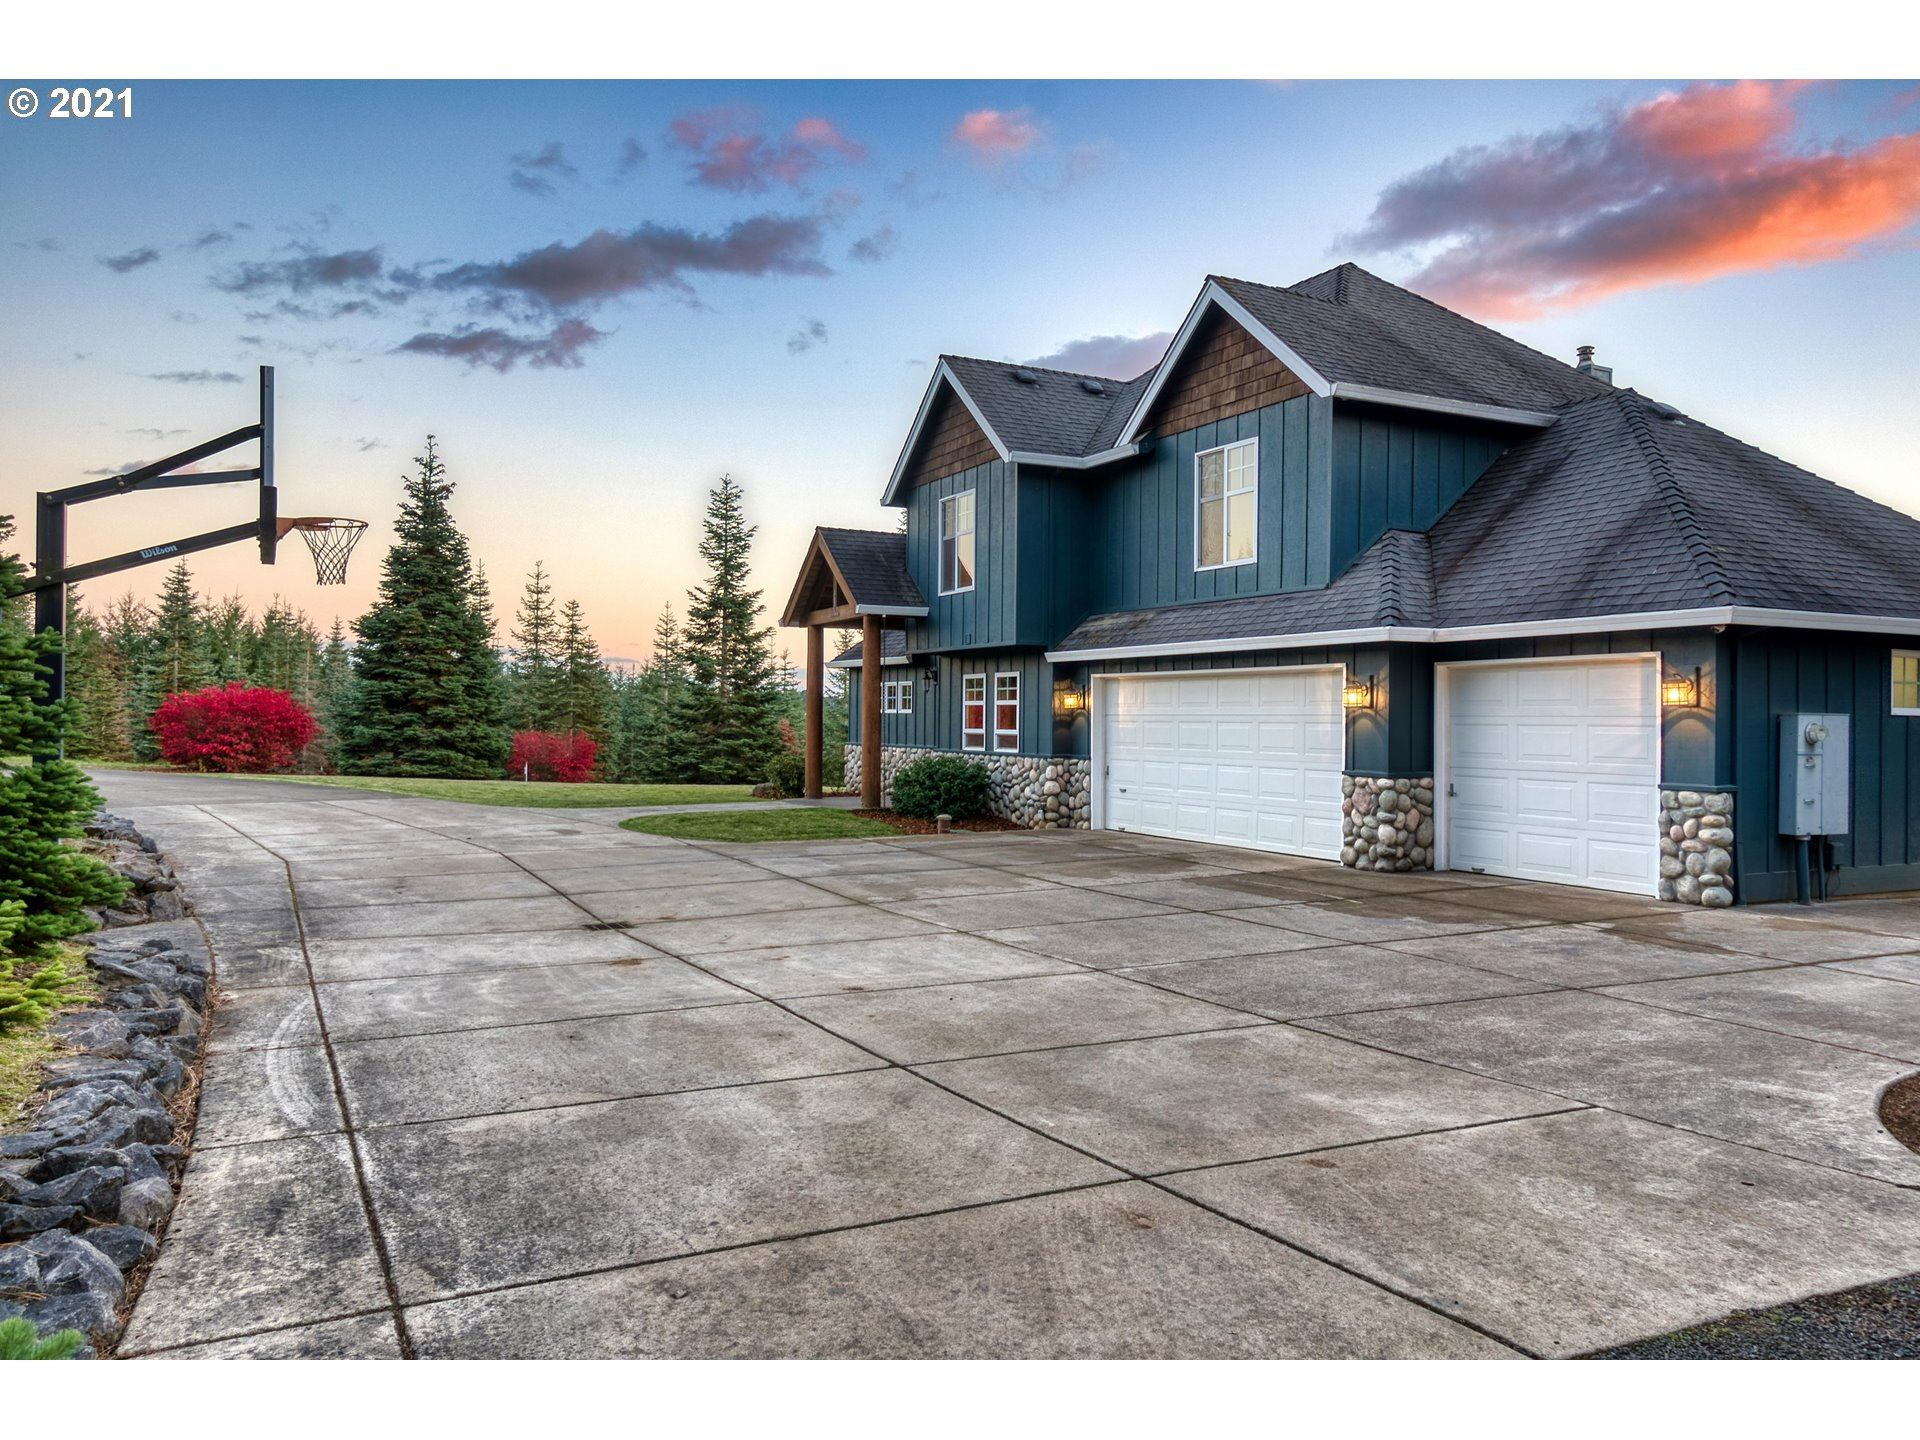 Photo of 37370 NW HAHN RD, Banks, OR 97106 (MLS # 21576571)